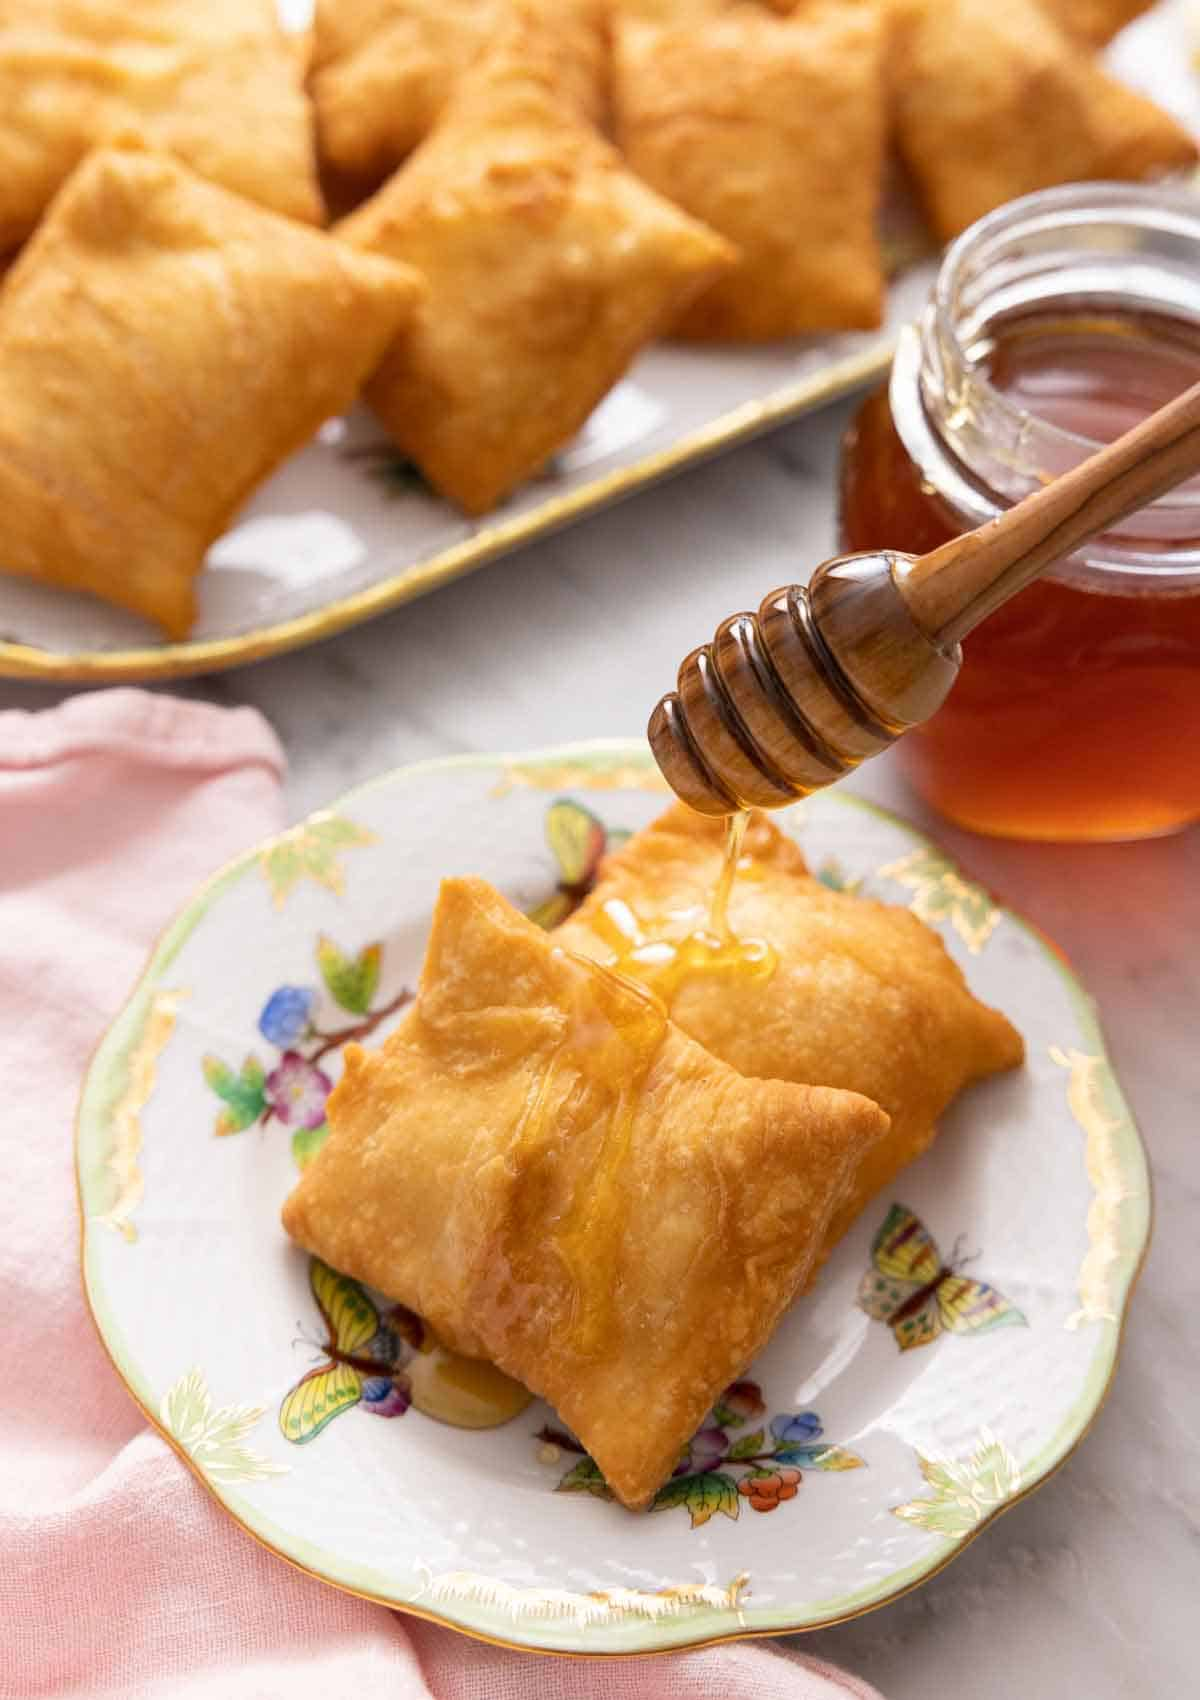 A plate with two sopapillas with honey drizzled over them.